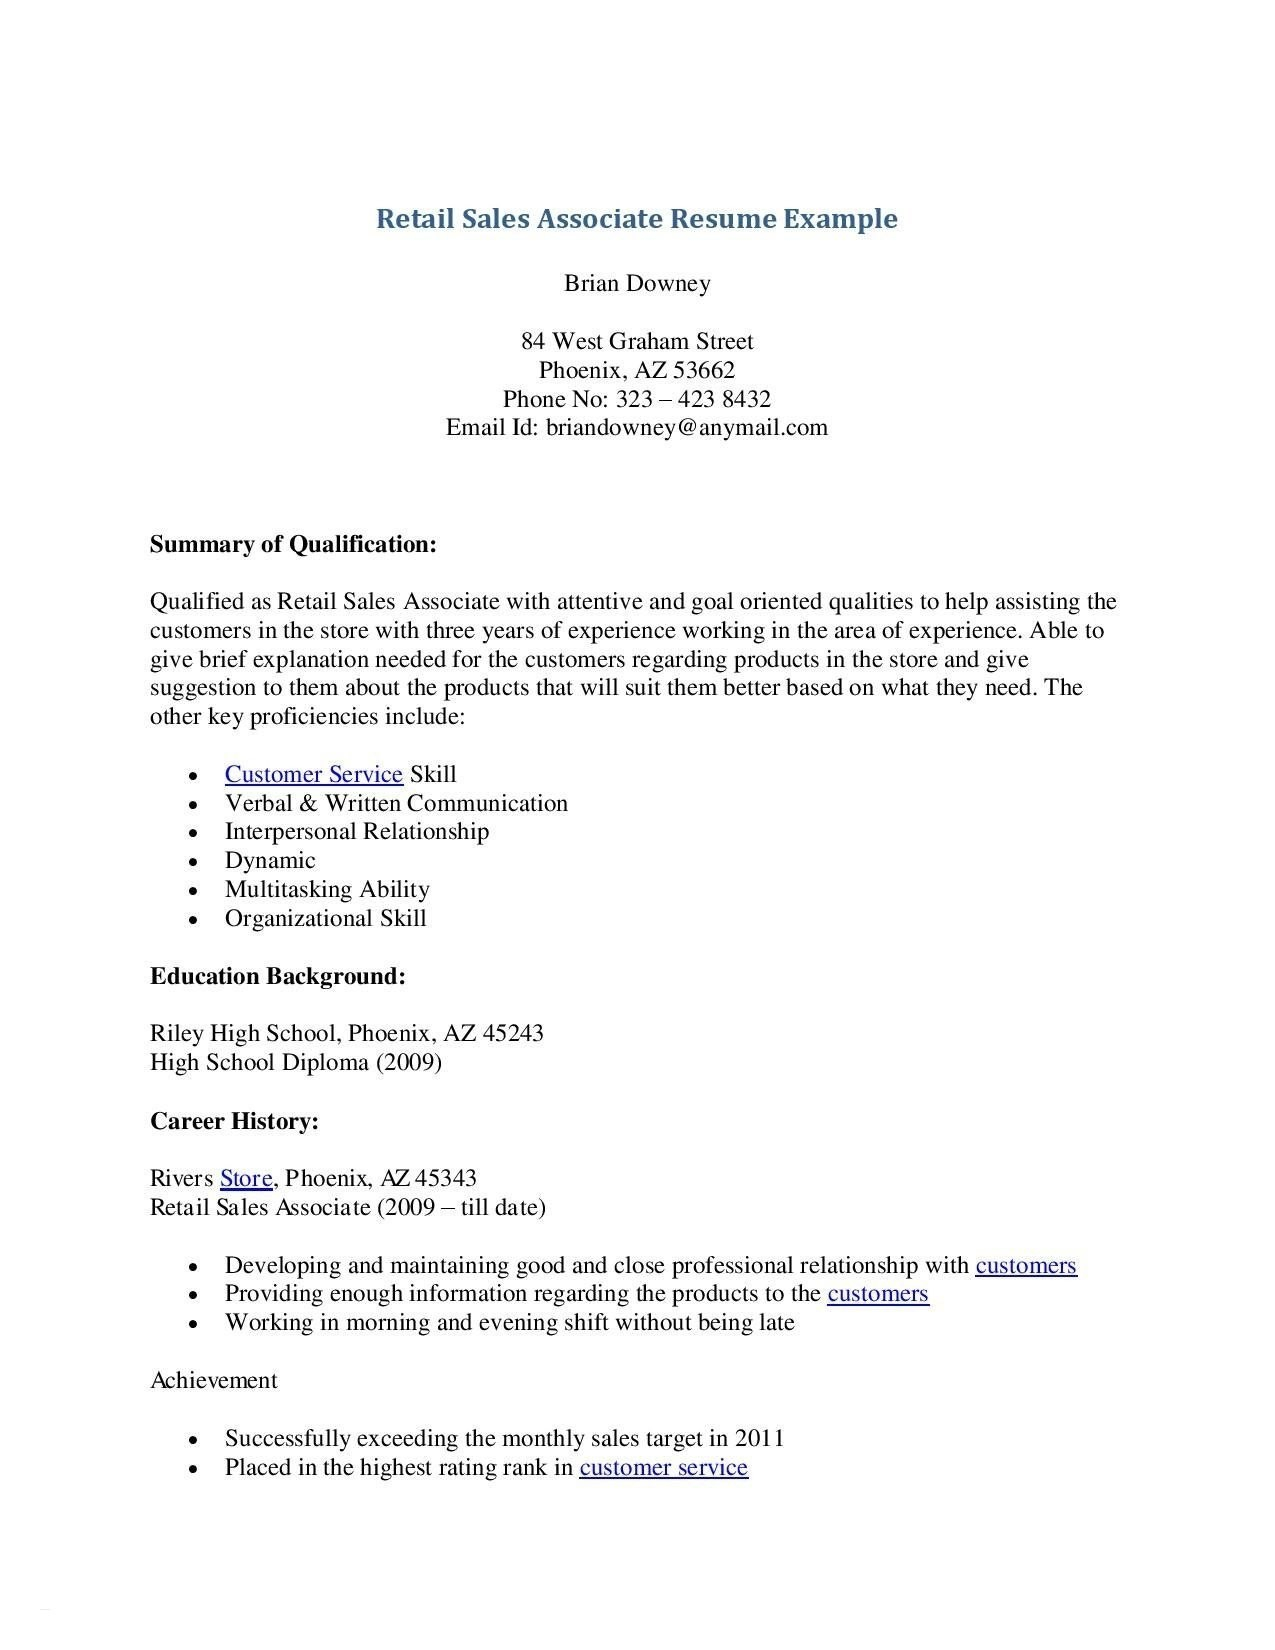 Resume Template for Retail Sales associate - Retail Sales Manager Resume Lovely Retail Resume Sample